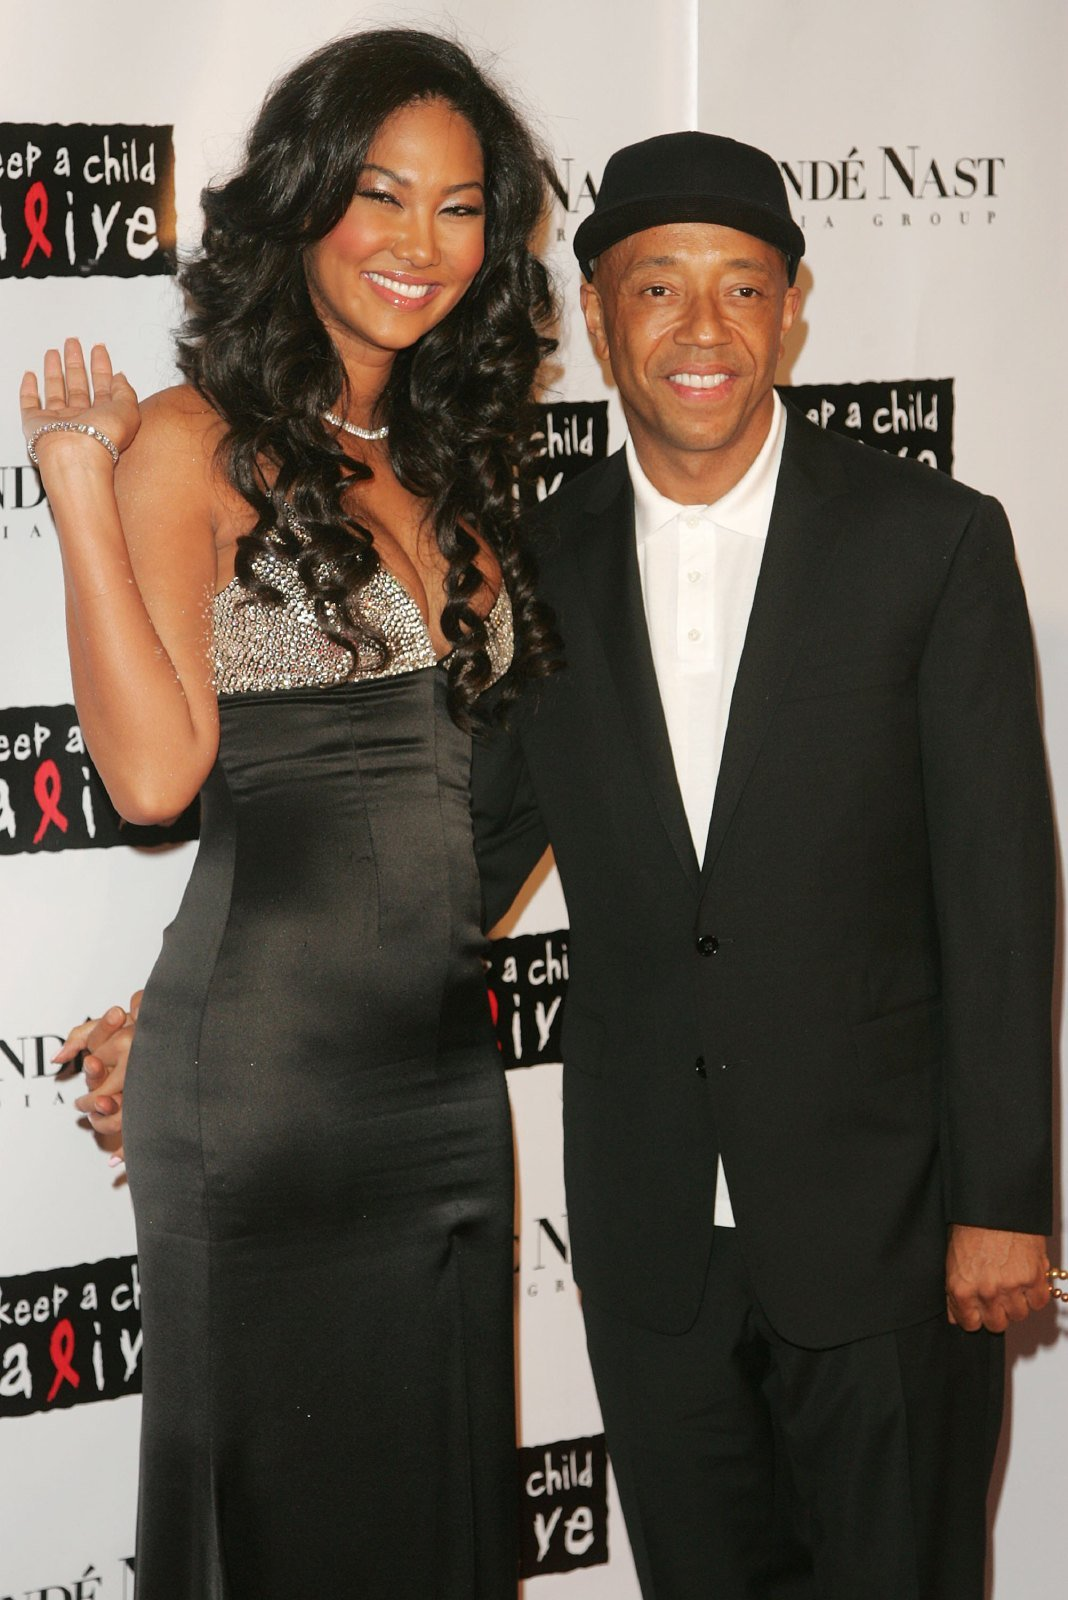 """Designer Kimora Lee Simmons and Recording executive/producer Russell Simmons attend """"The Black Ball"""" presented by Conde Nast Media Group and hosted by Alicia Keys and Iman to benefit """"Keep A Child Alive"""" at Hammerstein Ballroom November 9, 2006 